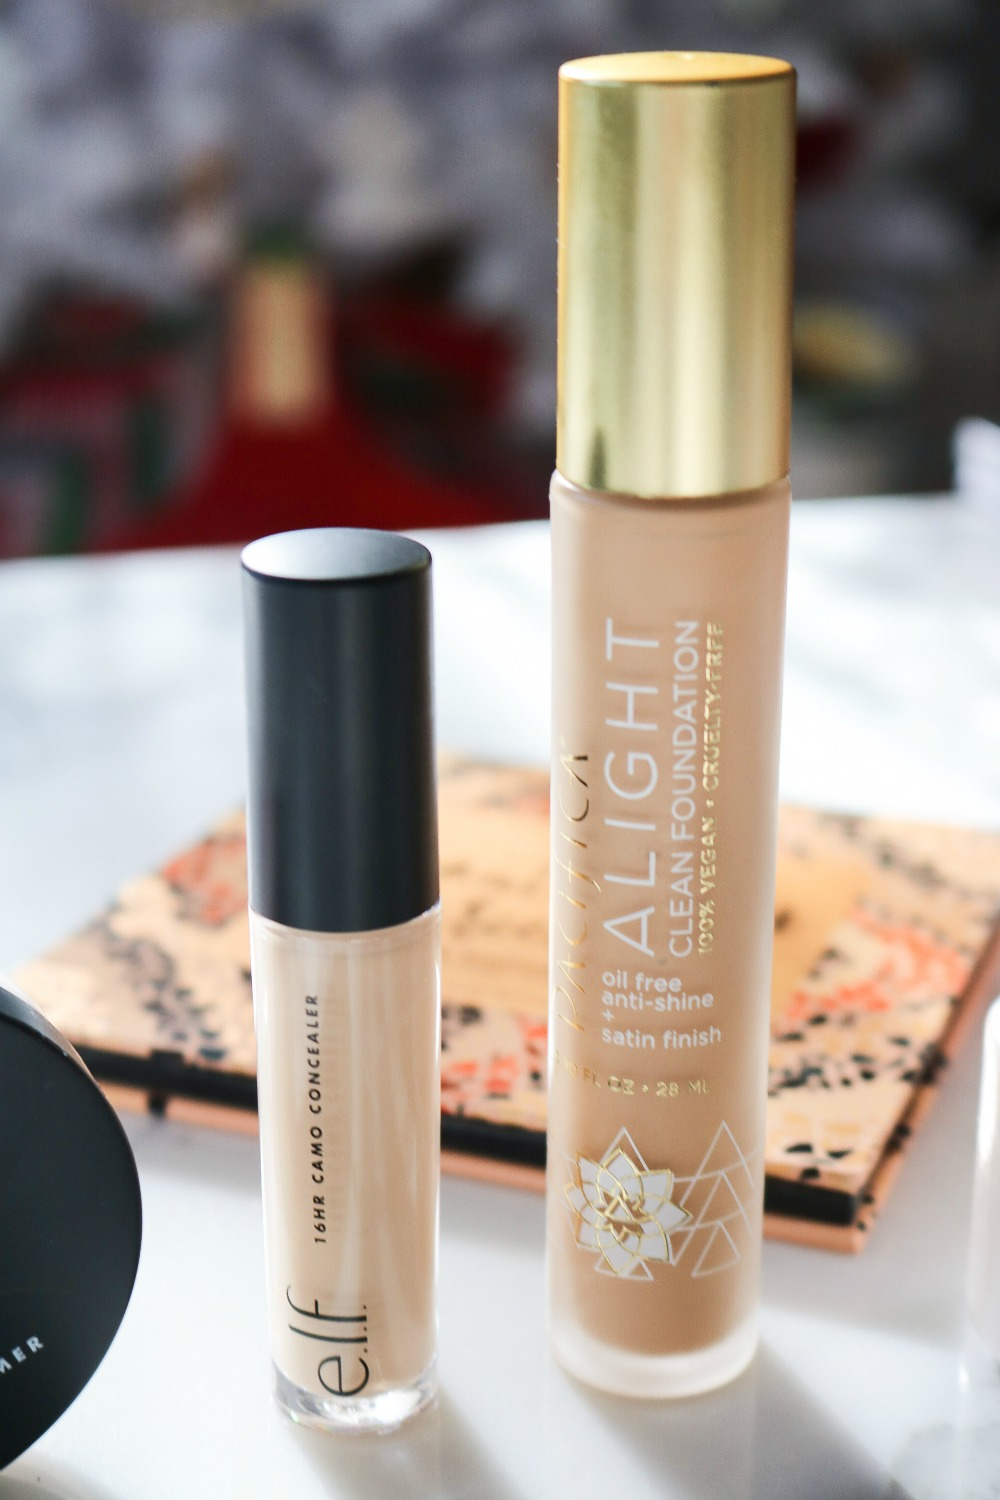 New Drugstore Makeup Testing I ELF Camo Concealer and Pacifica Alight Foundation